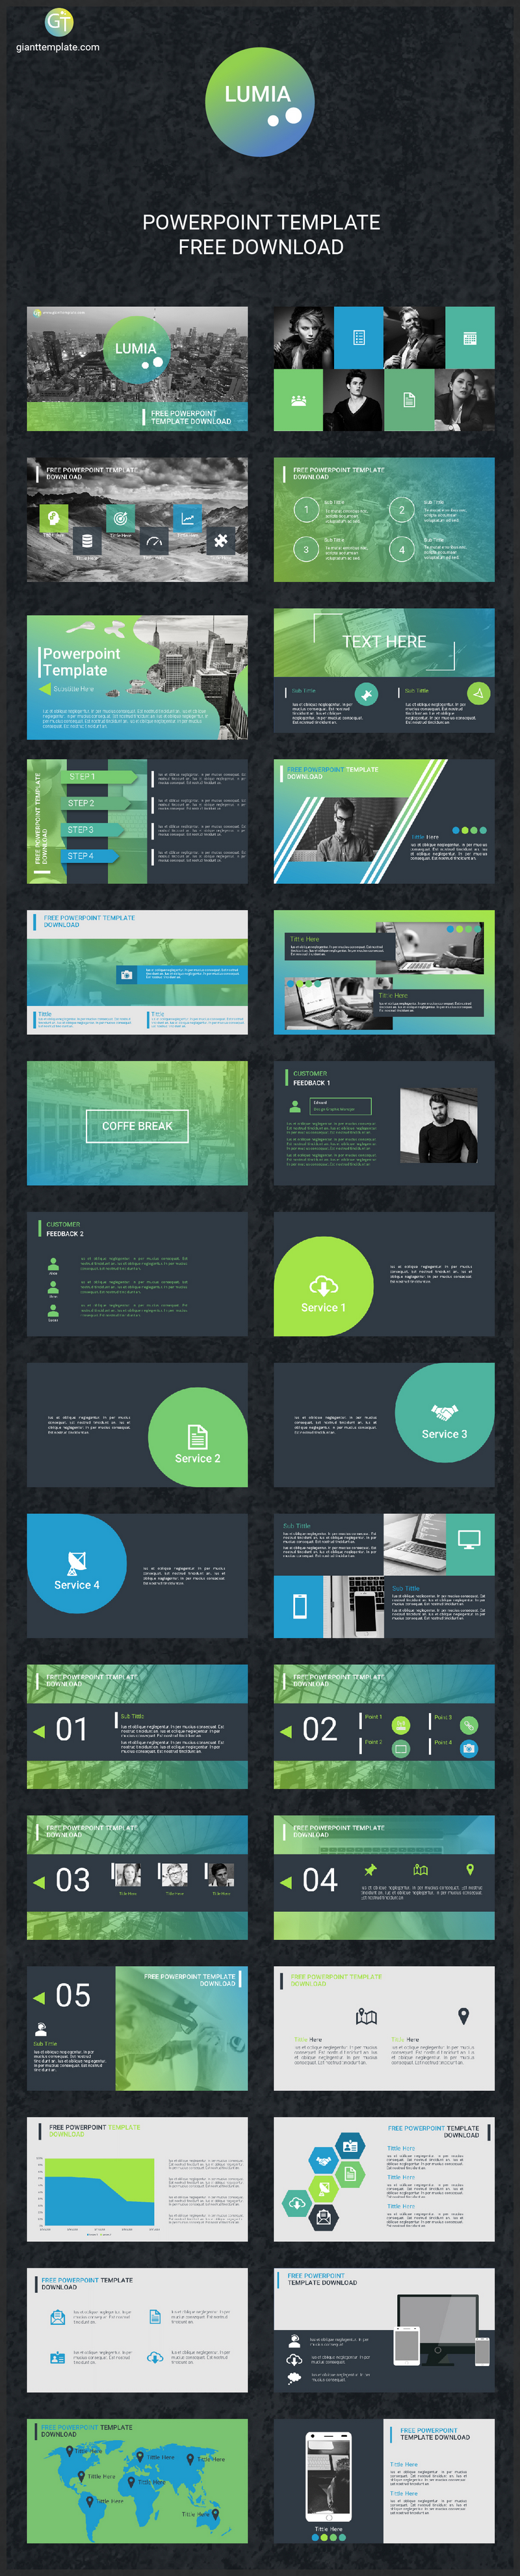 Free powepoint presentation template 30 slides bypeople and layouts suitable for all kinds of academic or professional presentations the slides feature roboto font as default free for personal use only toneelgroepblik Gallery